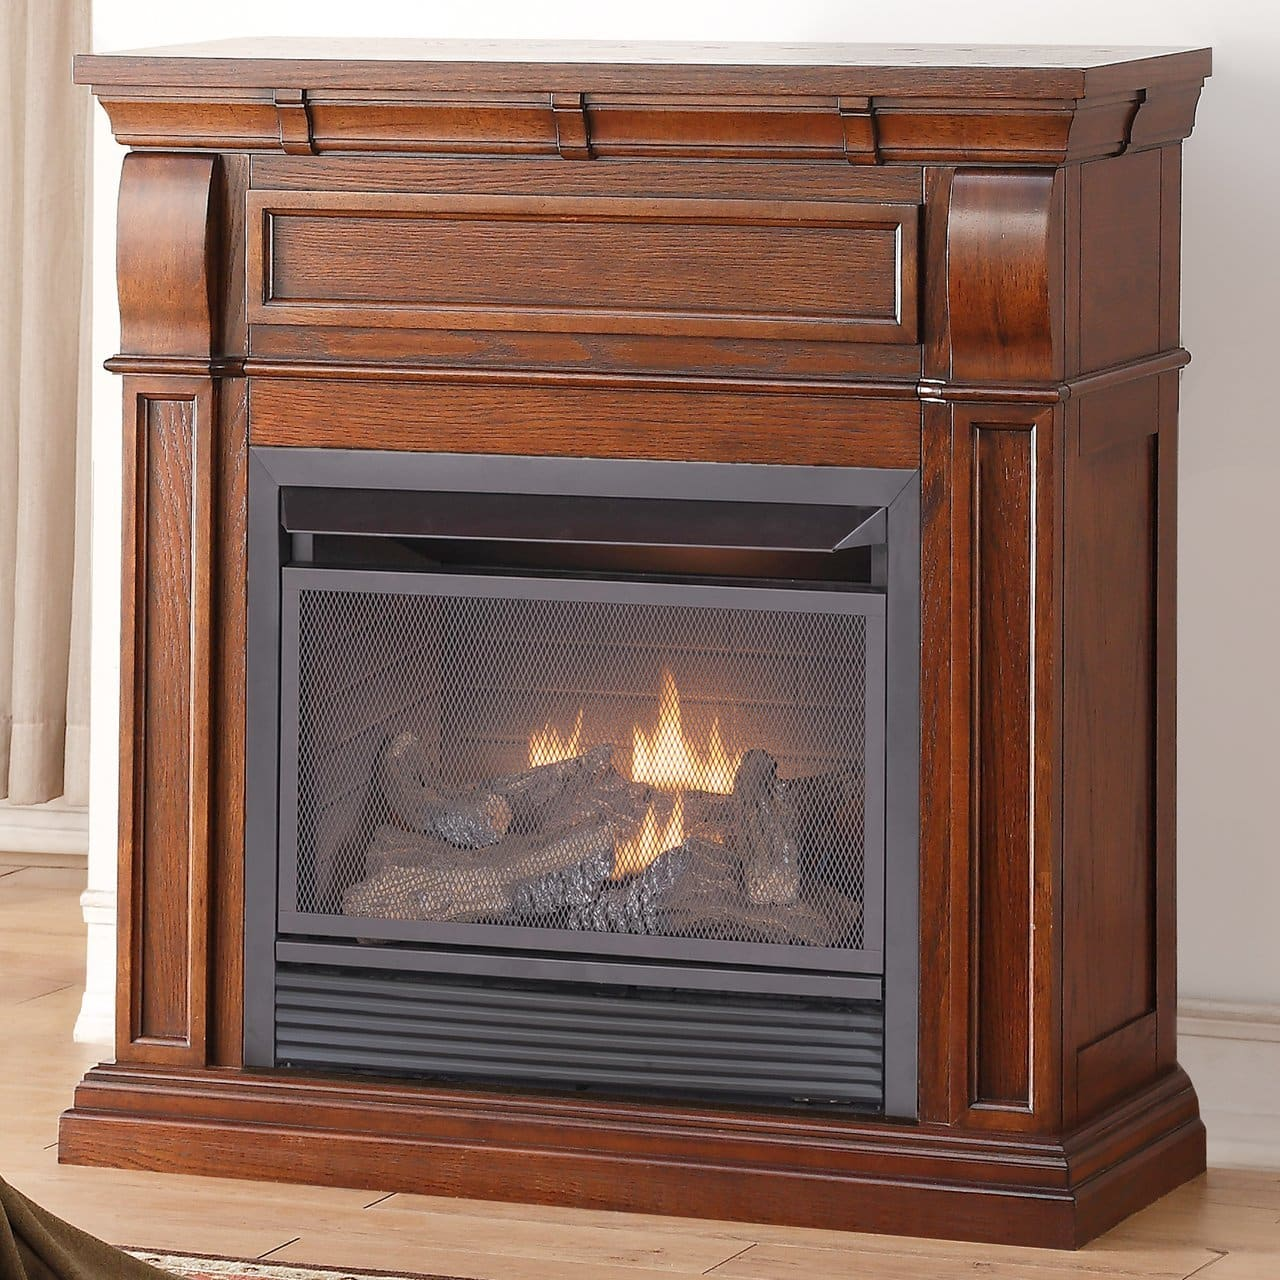 Duluth Forge Dual Fuel Vent Free Fireplace 26 000 Btu